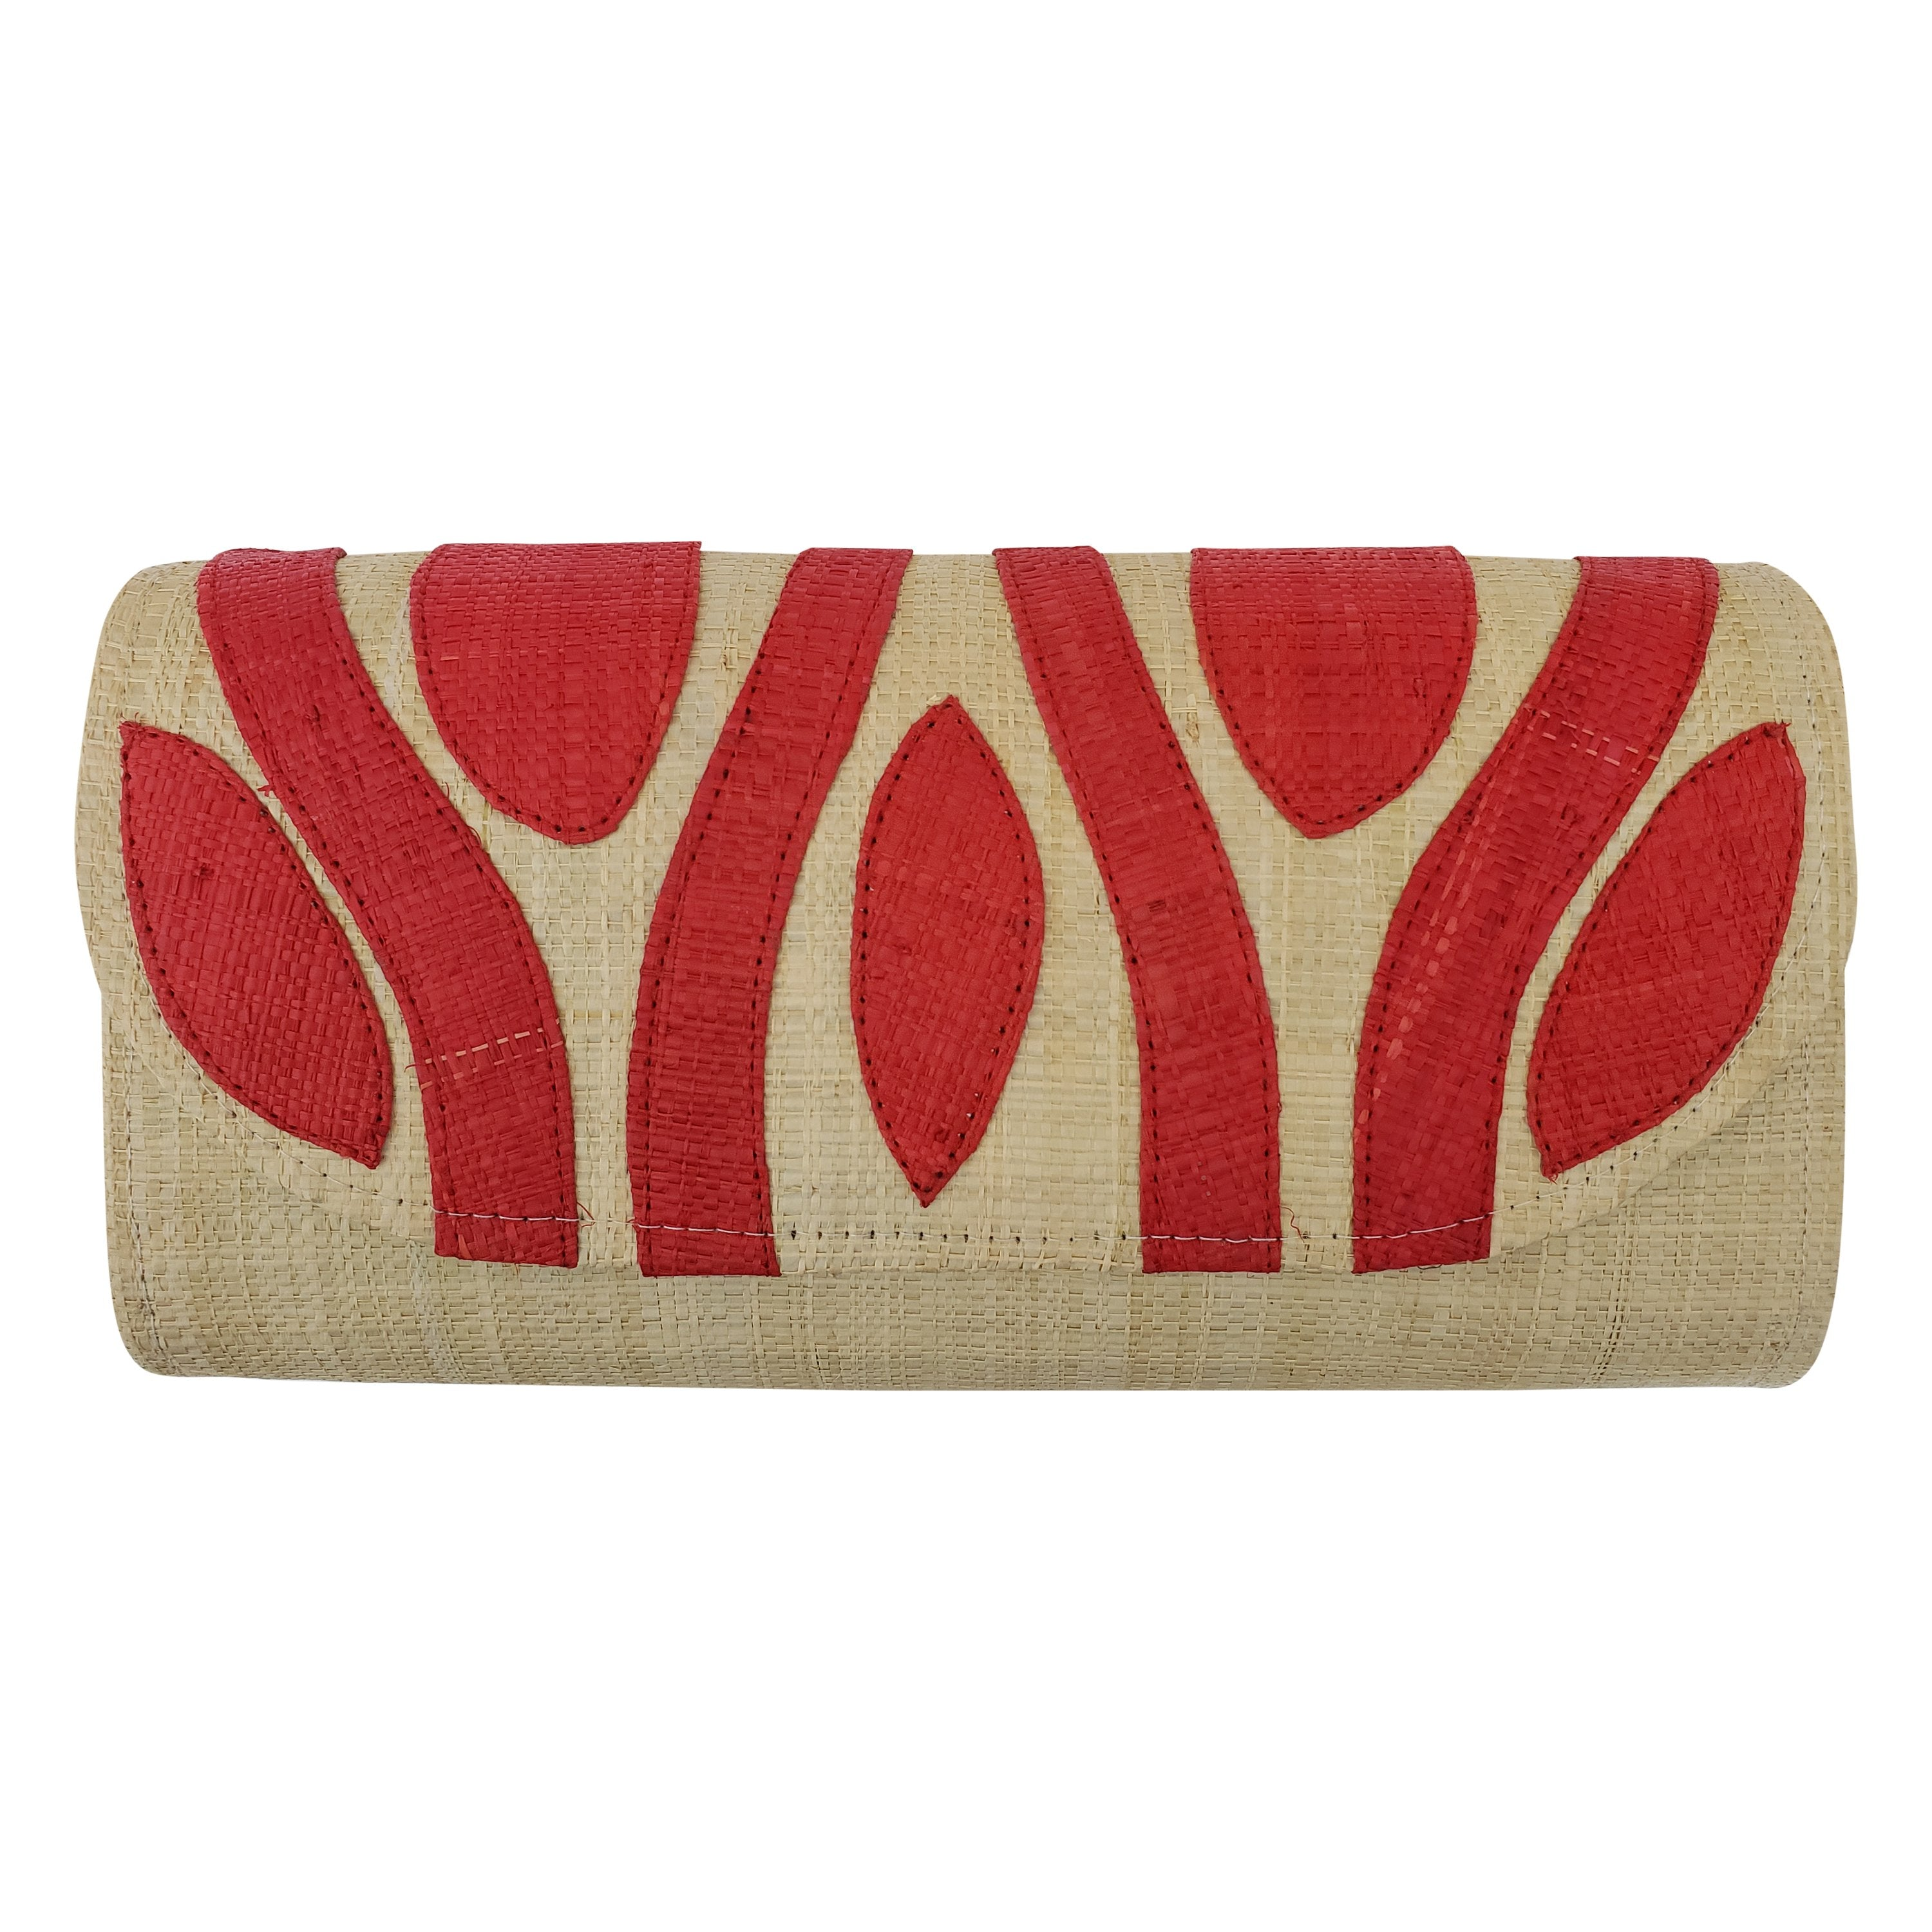 Authentic Handwoven Natural Madagascar Raffia Clutch with Red Accents